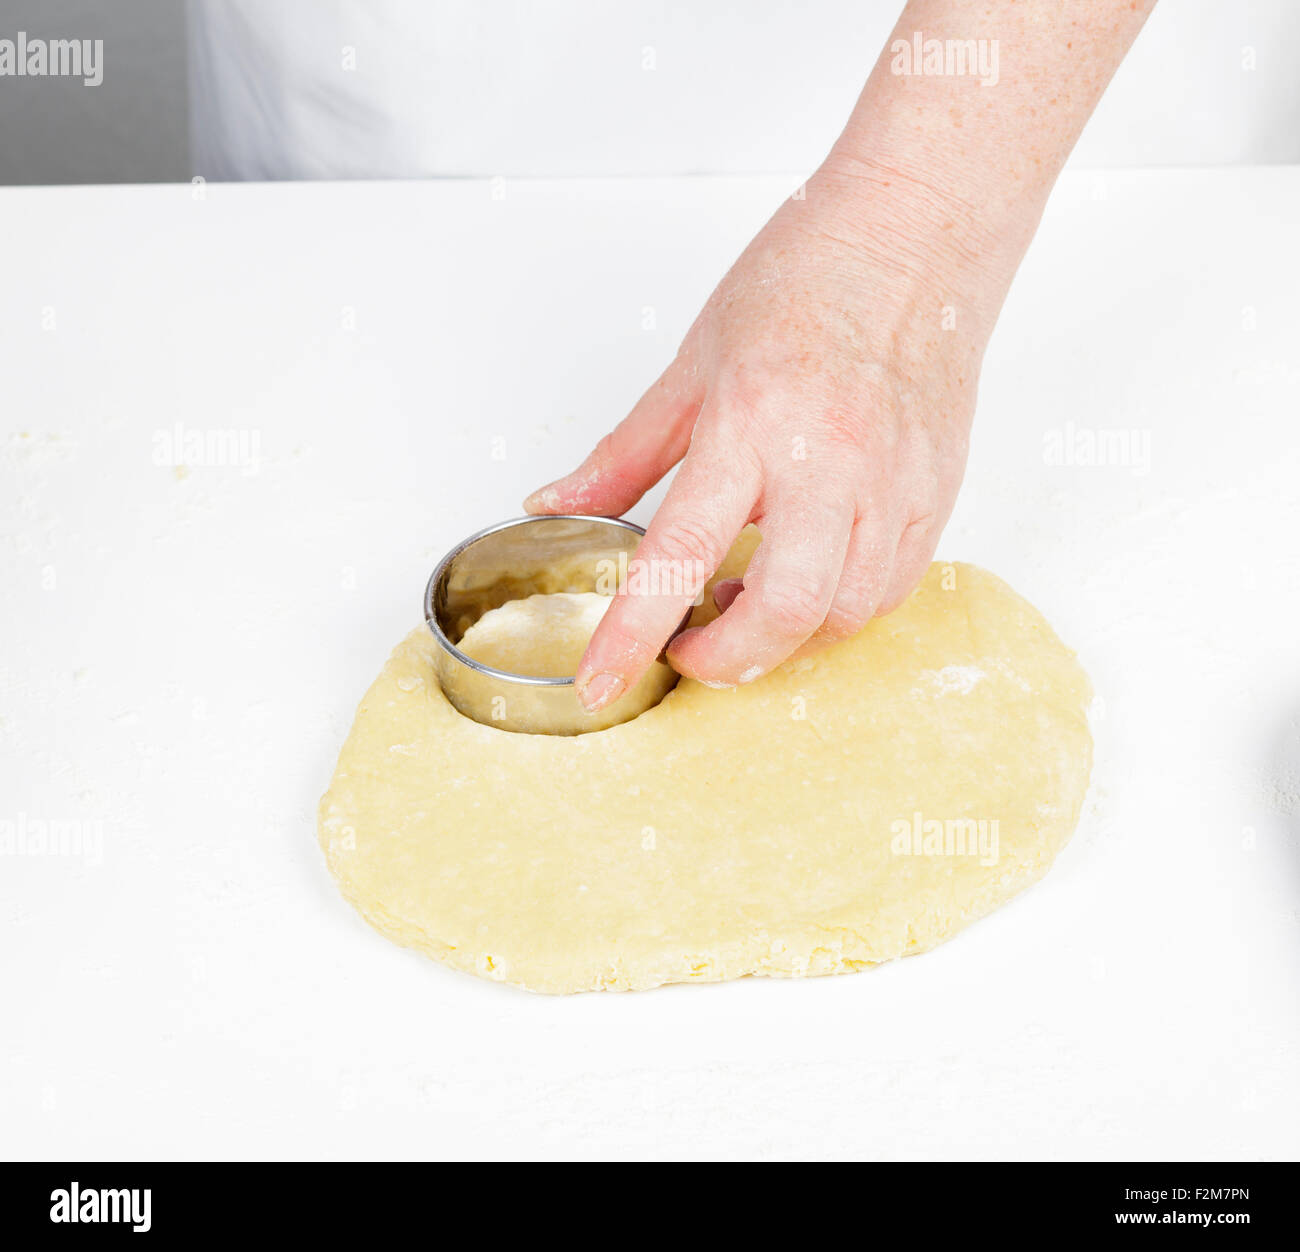 using a cookie cutter - Stock Image